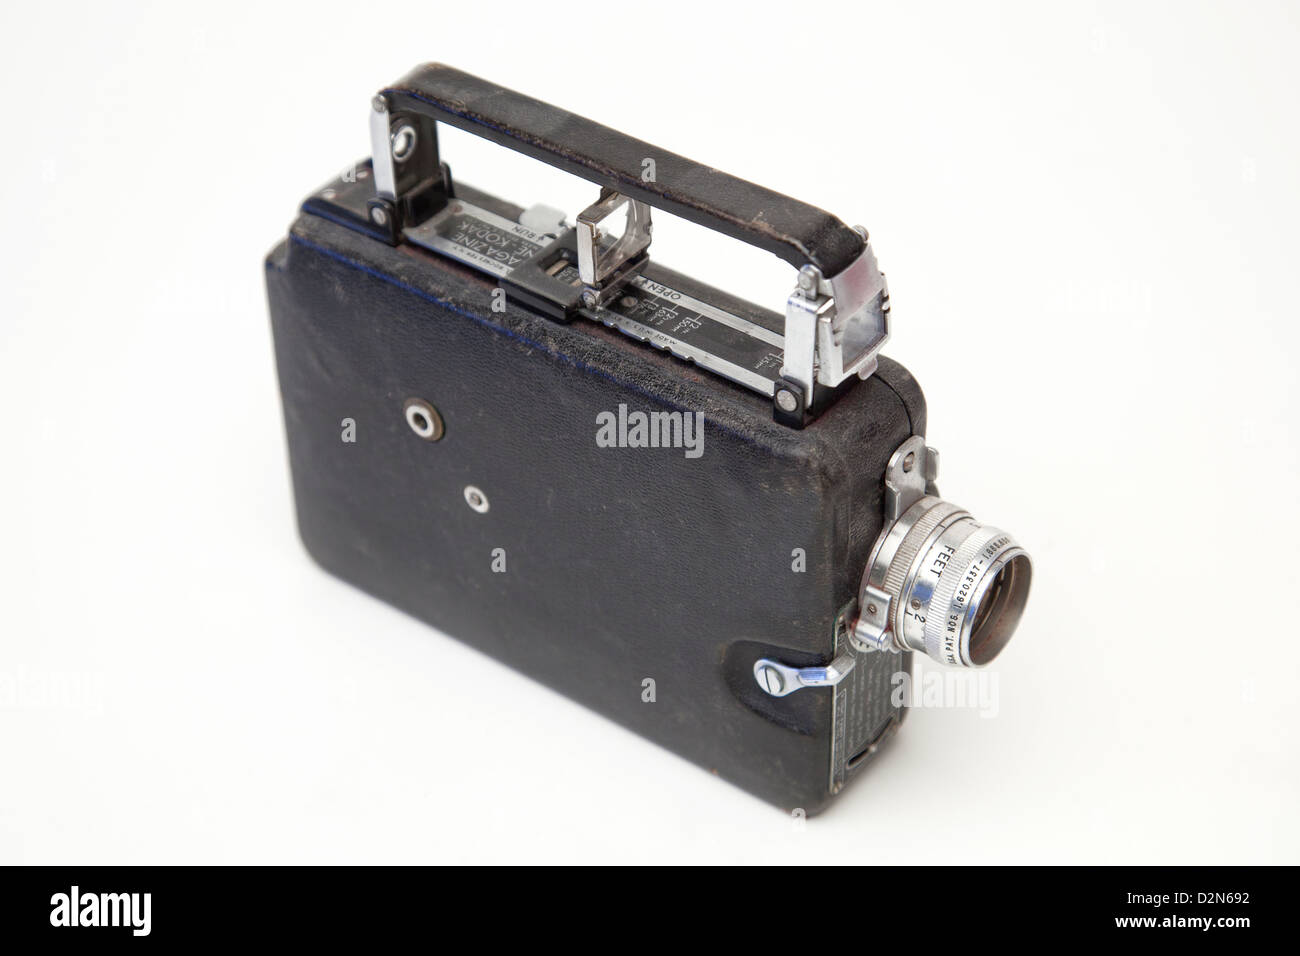 Studio Shot of a Vintage Kodak Eastman Magazine Cine Camera - Stock Image